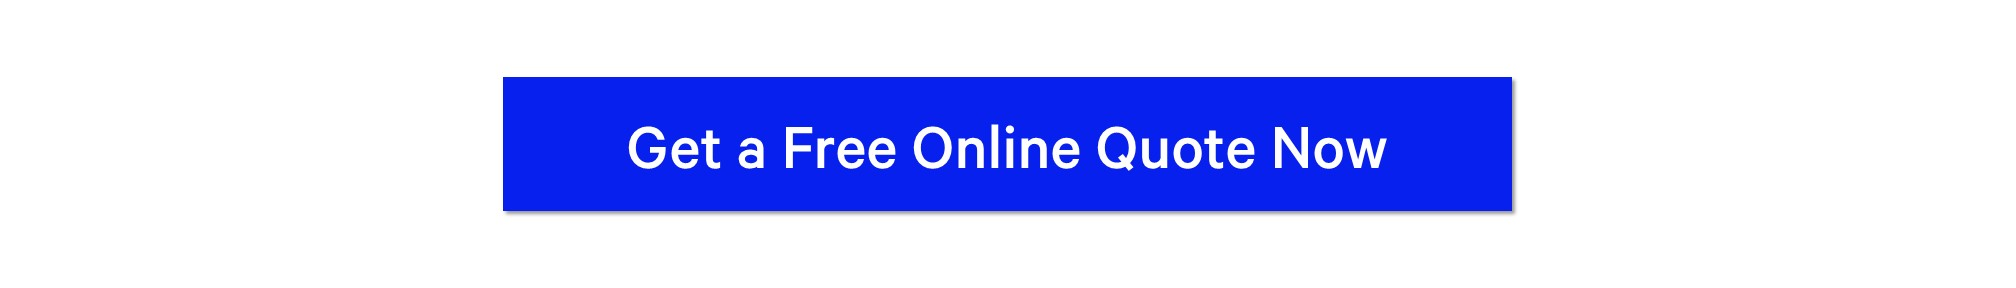 get-a-free-online-quote-now